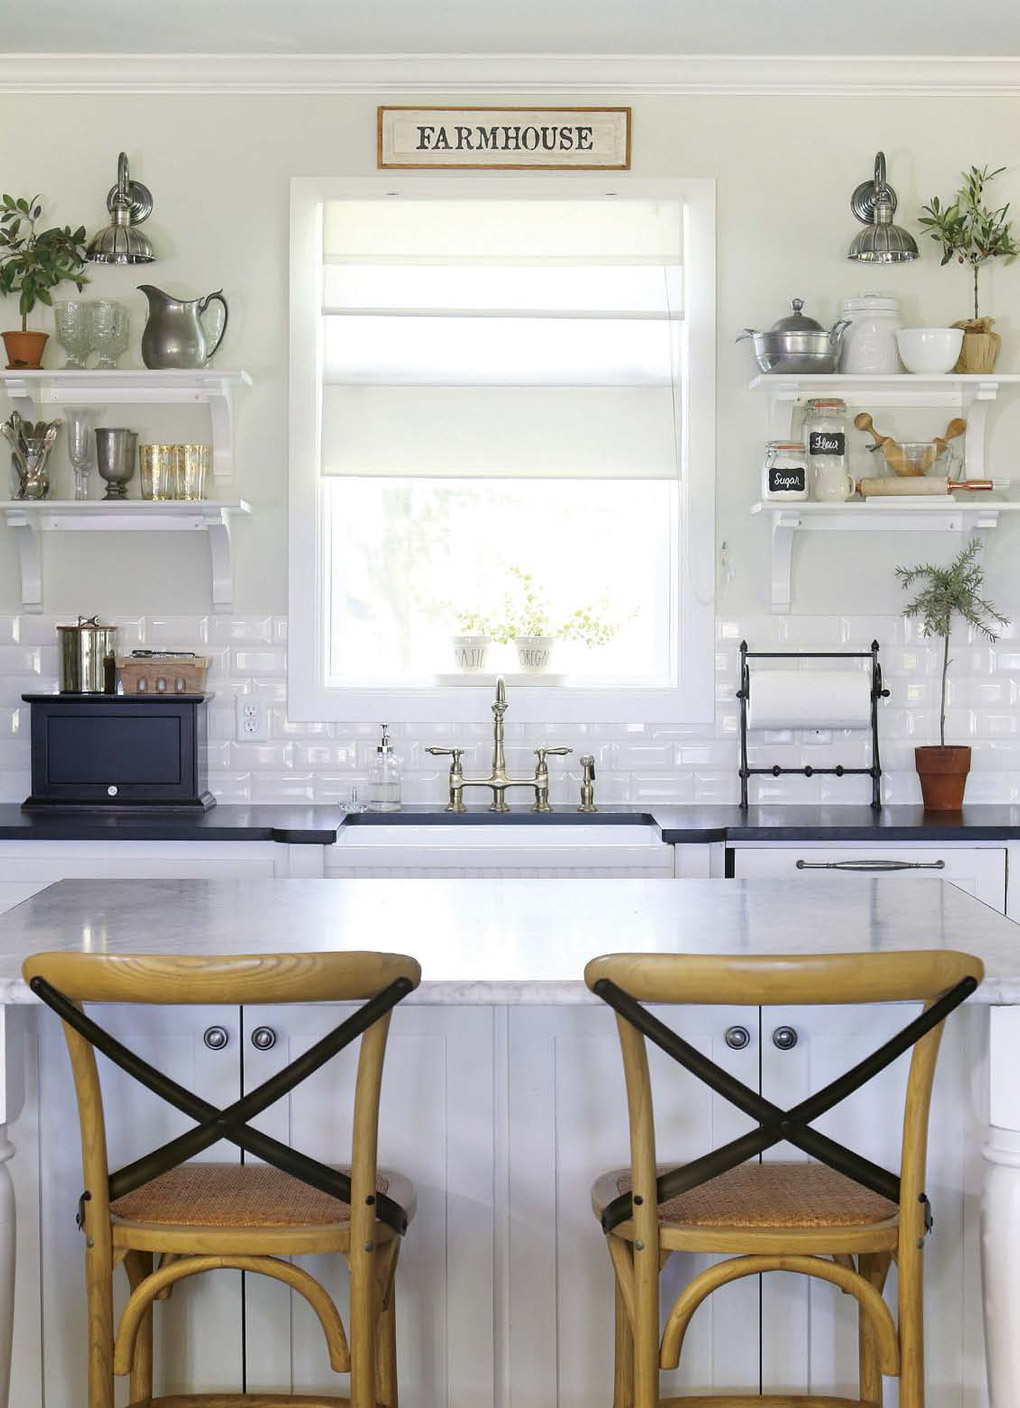 White kitchen renovation looking over two wooden barstools at the brightly lit center window flanked by white floating shelves.